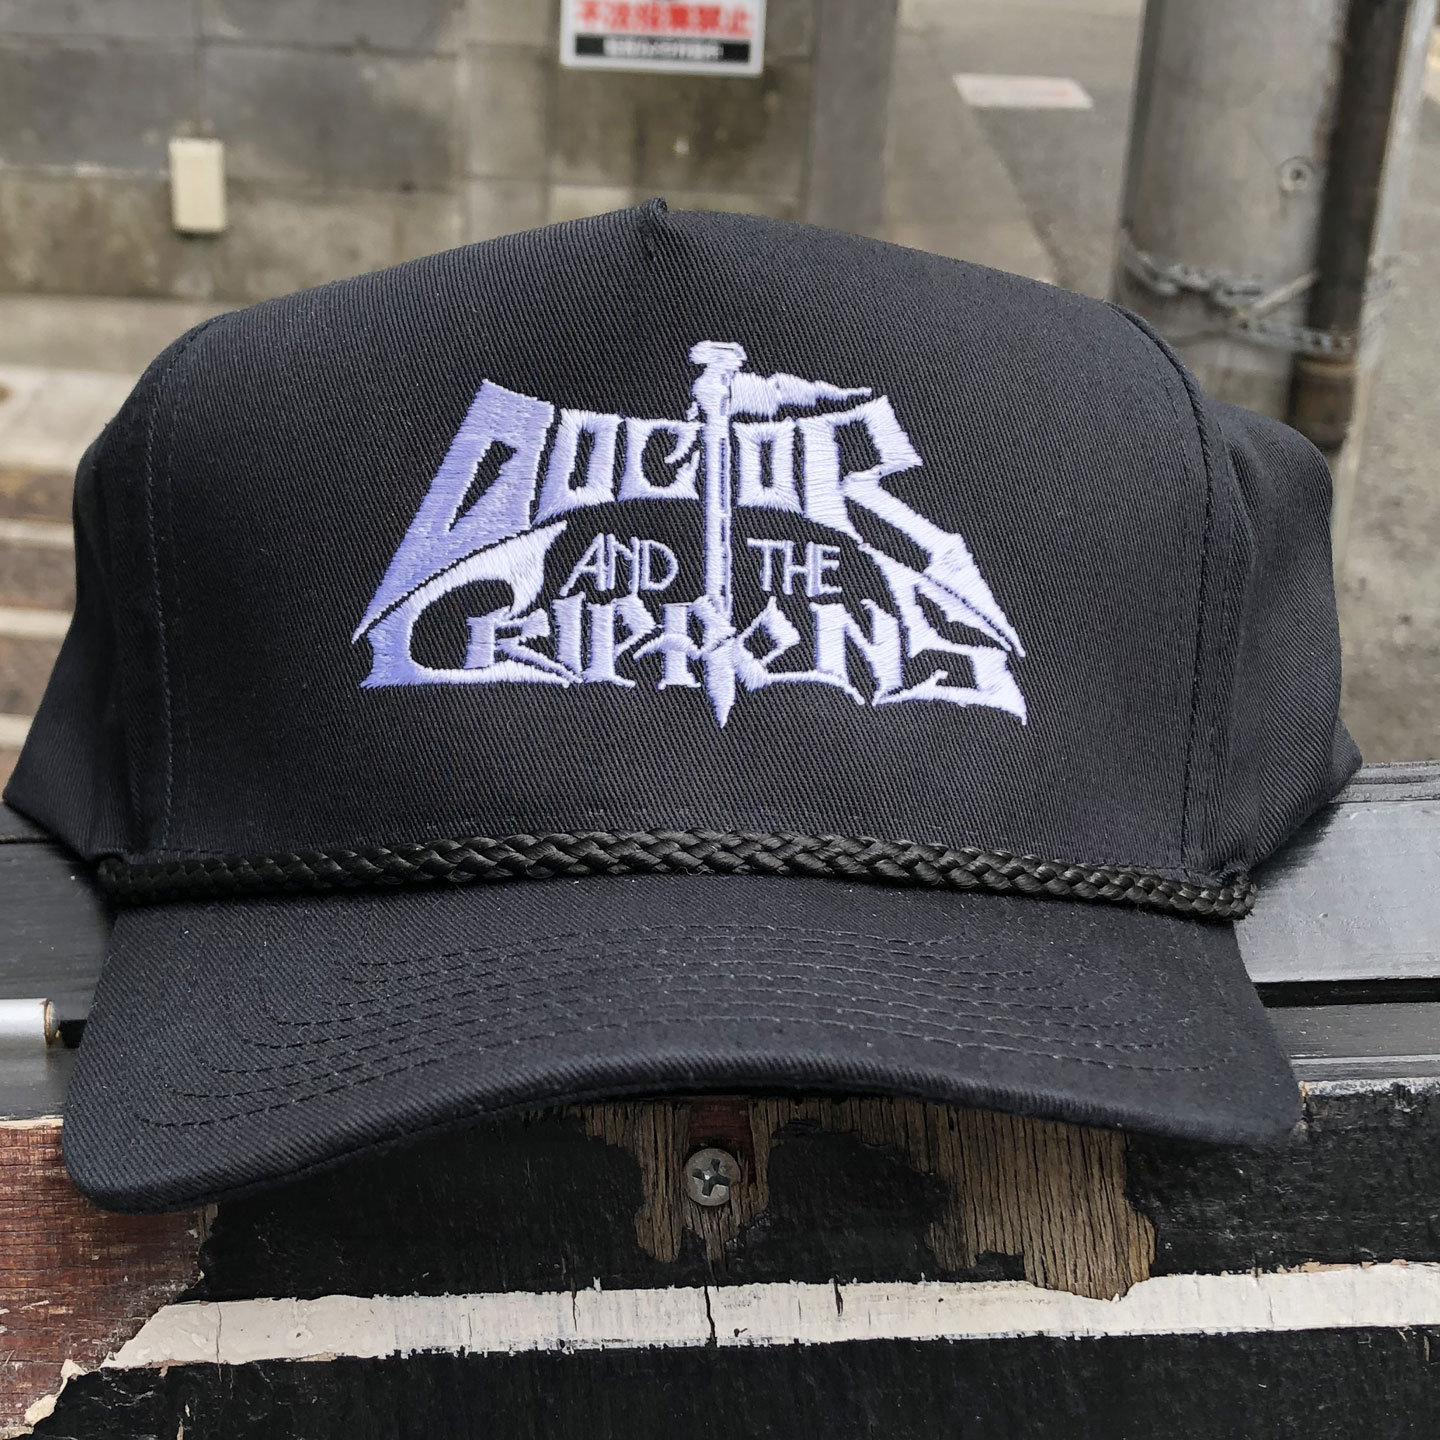 DOCTOR AND THE CRIPPENS CAP LOGO